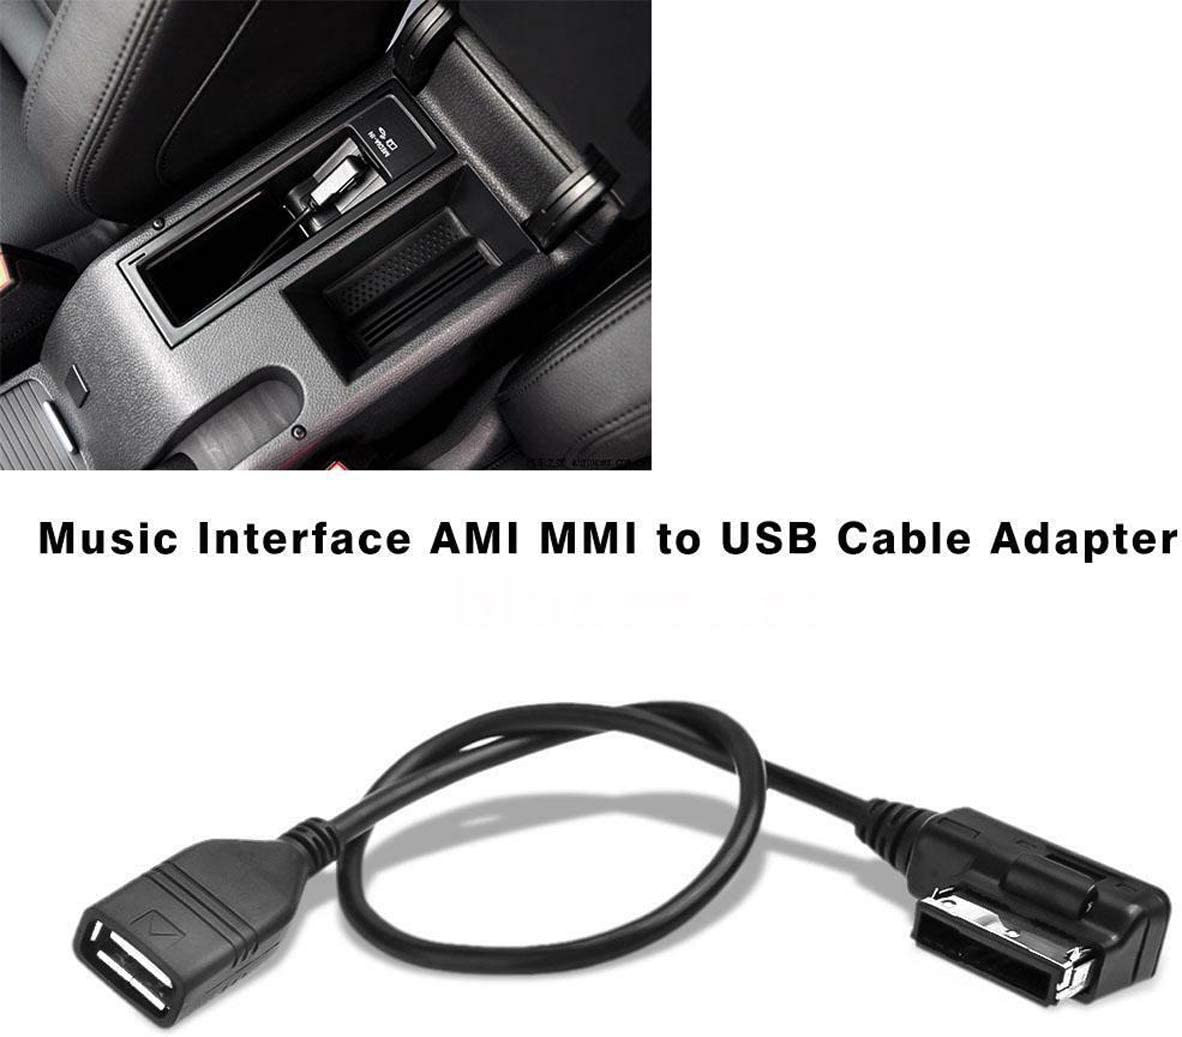 CHELINK Audi AMI MMI USB Cable Audio MP3 Music Interface Adapter Connect Music Storage Device with USB Connector for Audi VW Jetta GTI GLI Passat CC Tiguan Touareg EOS